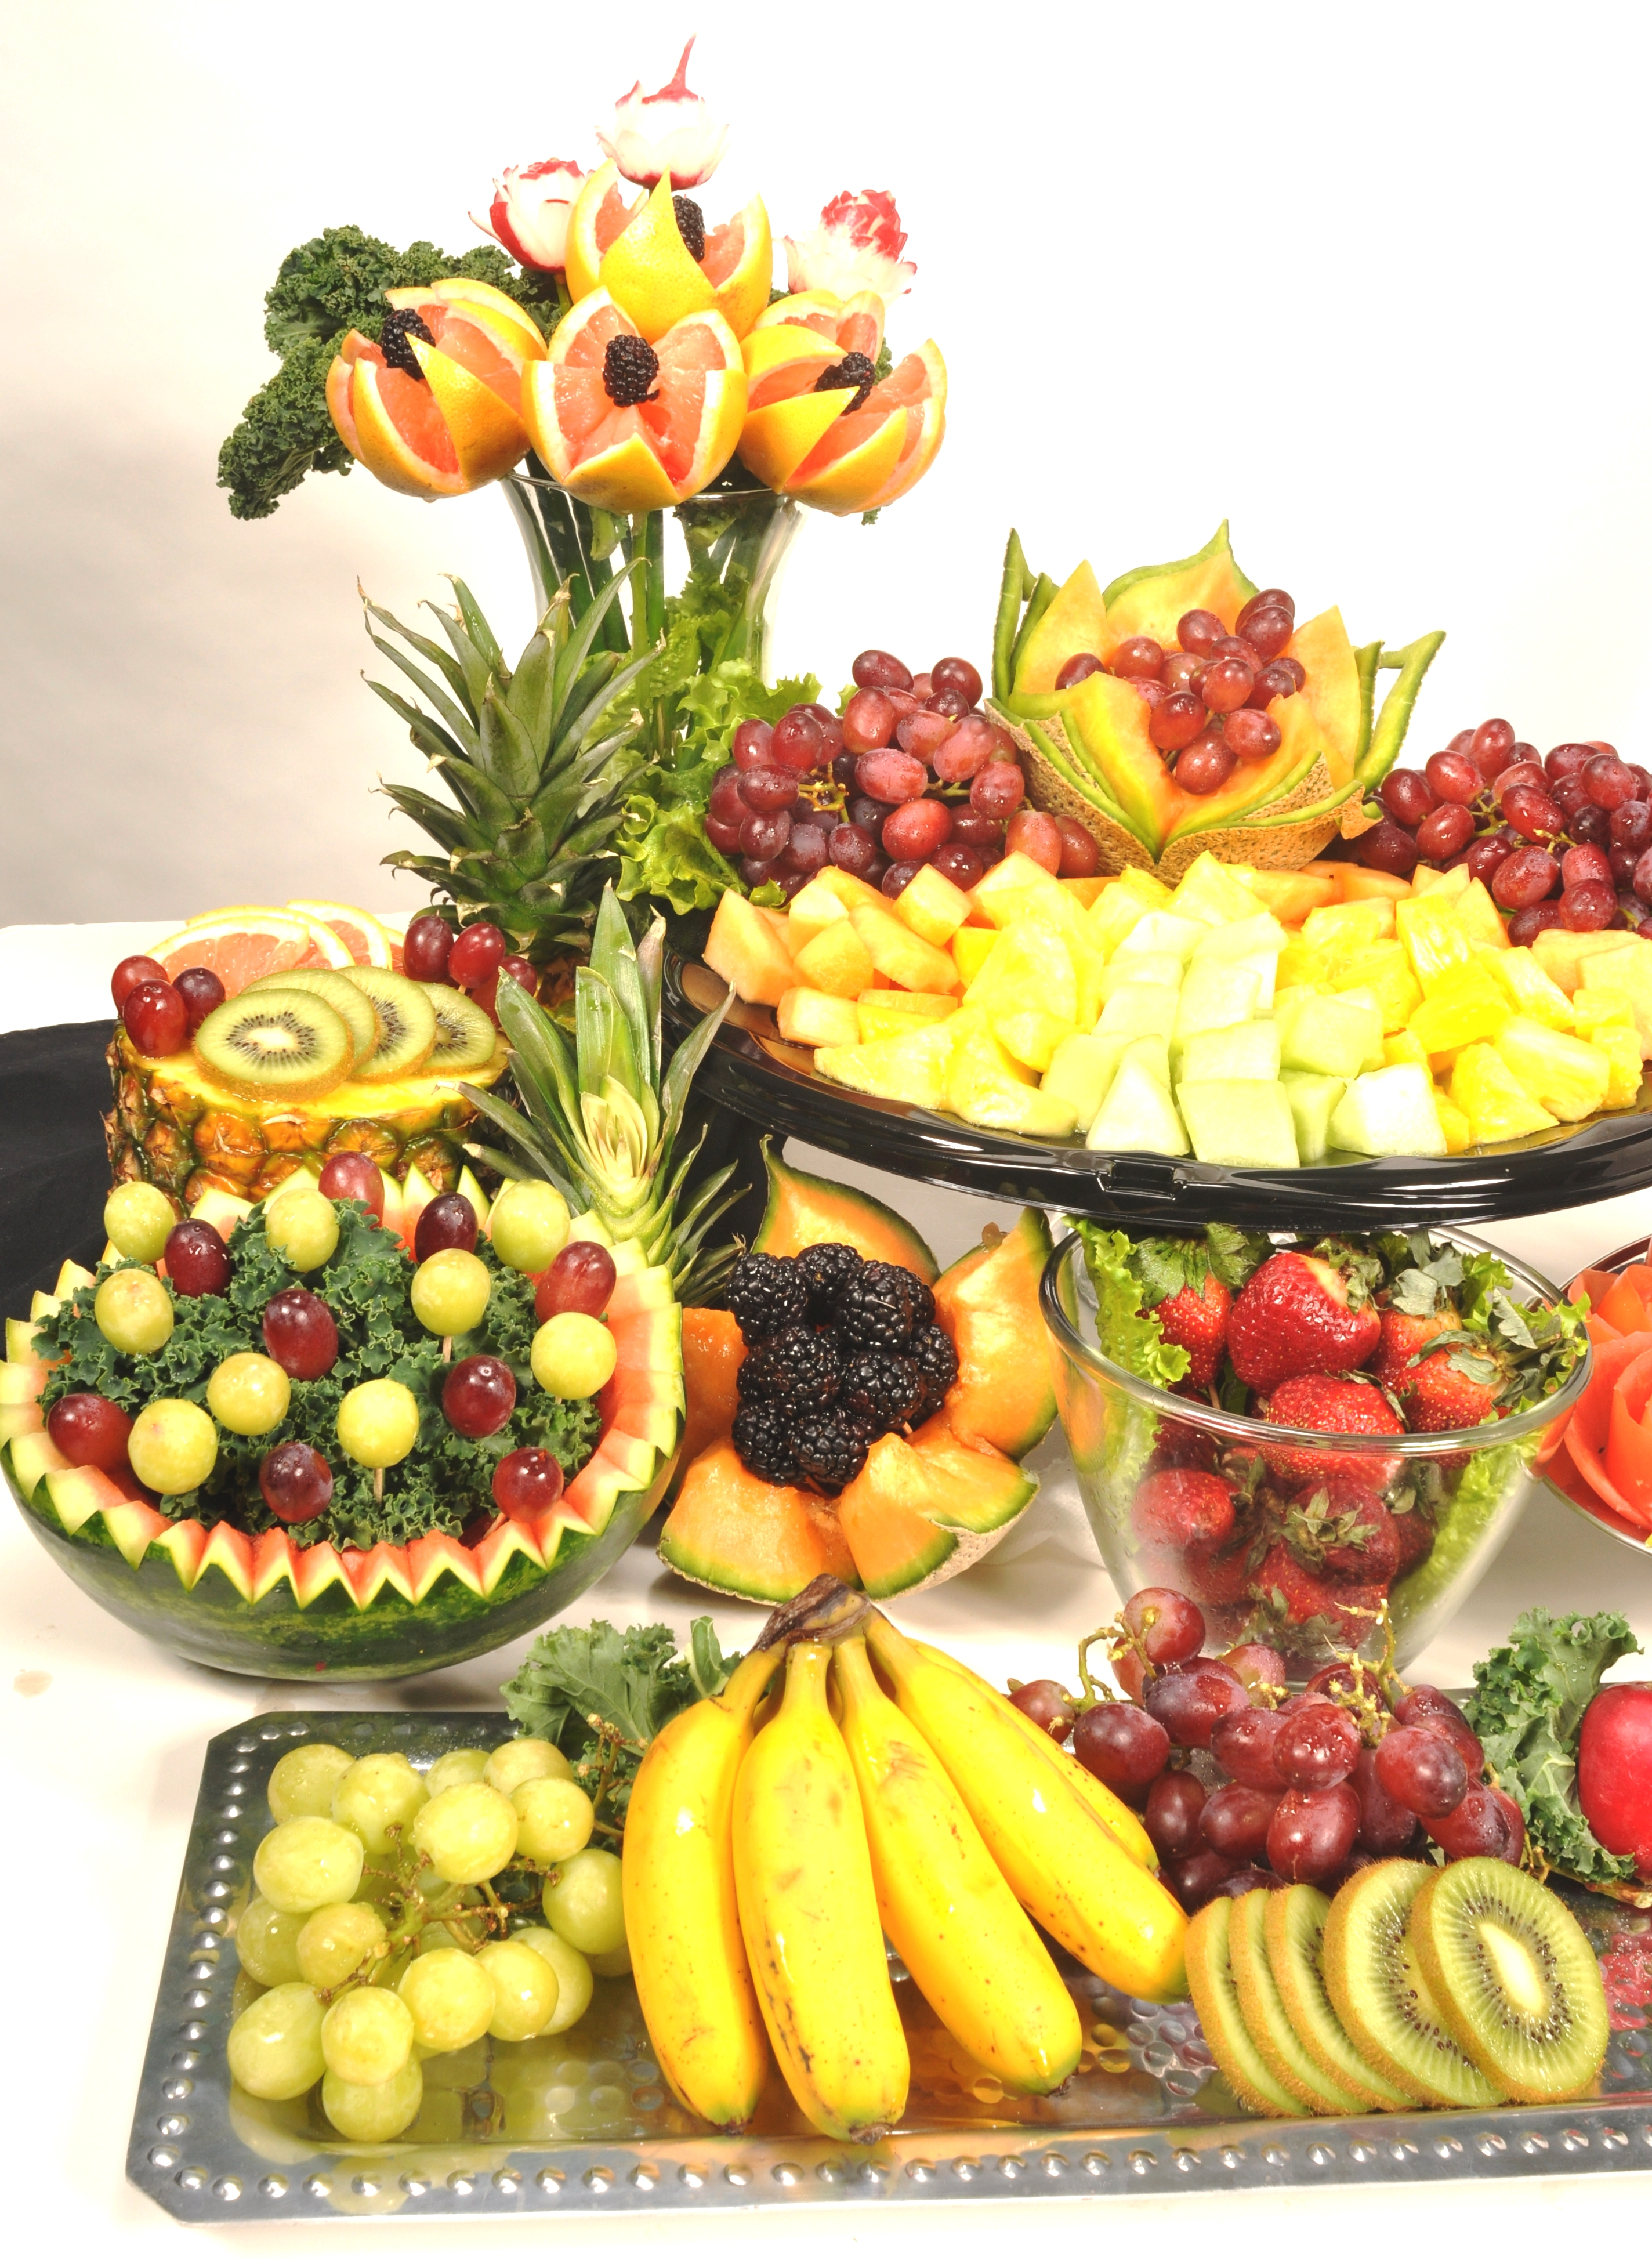 Bridal Menus pictures   DSC 0240fruit displayabc